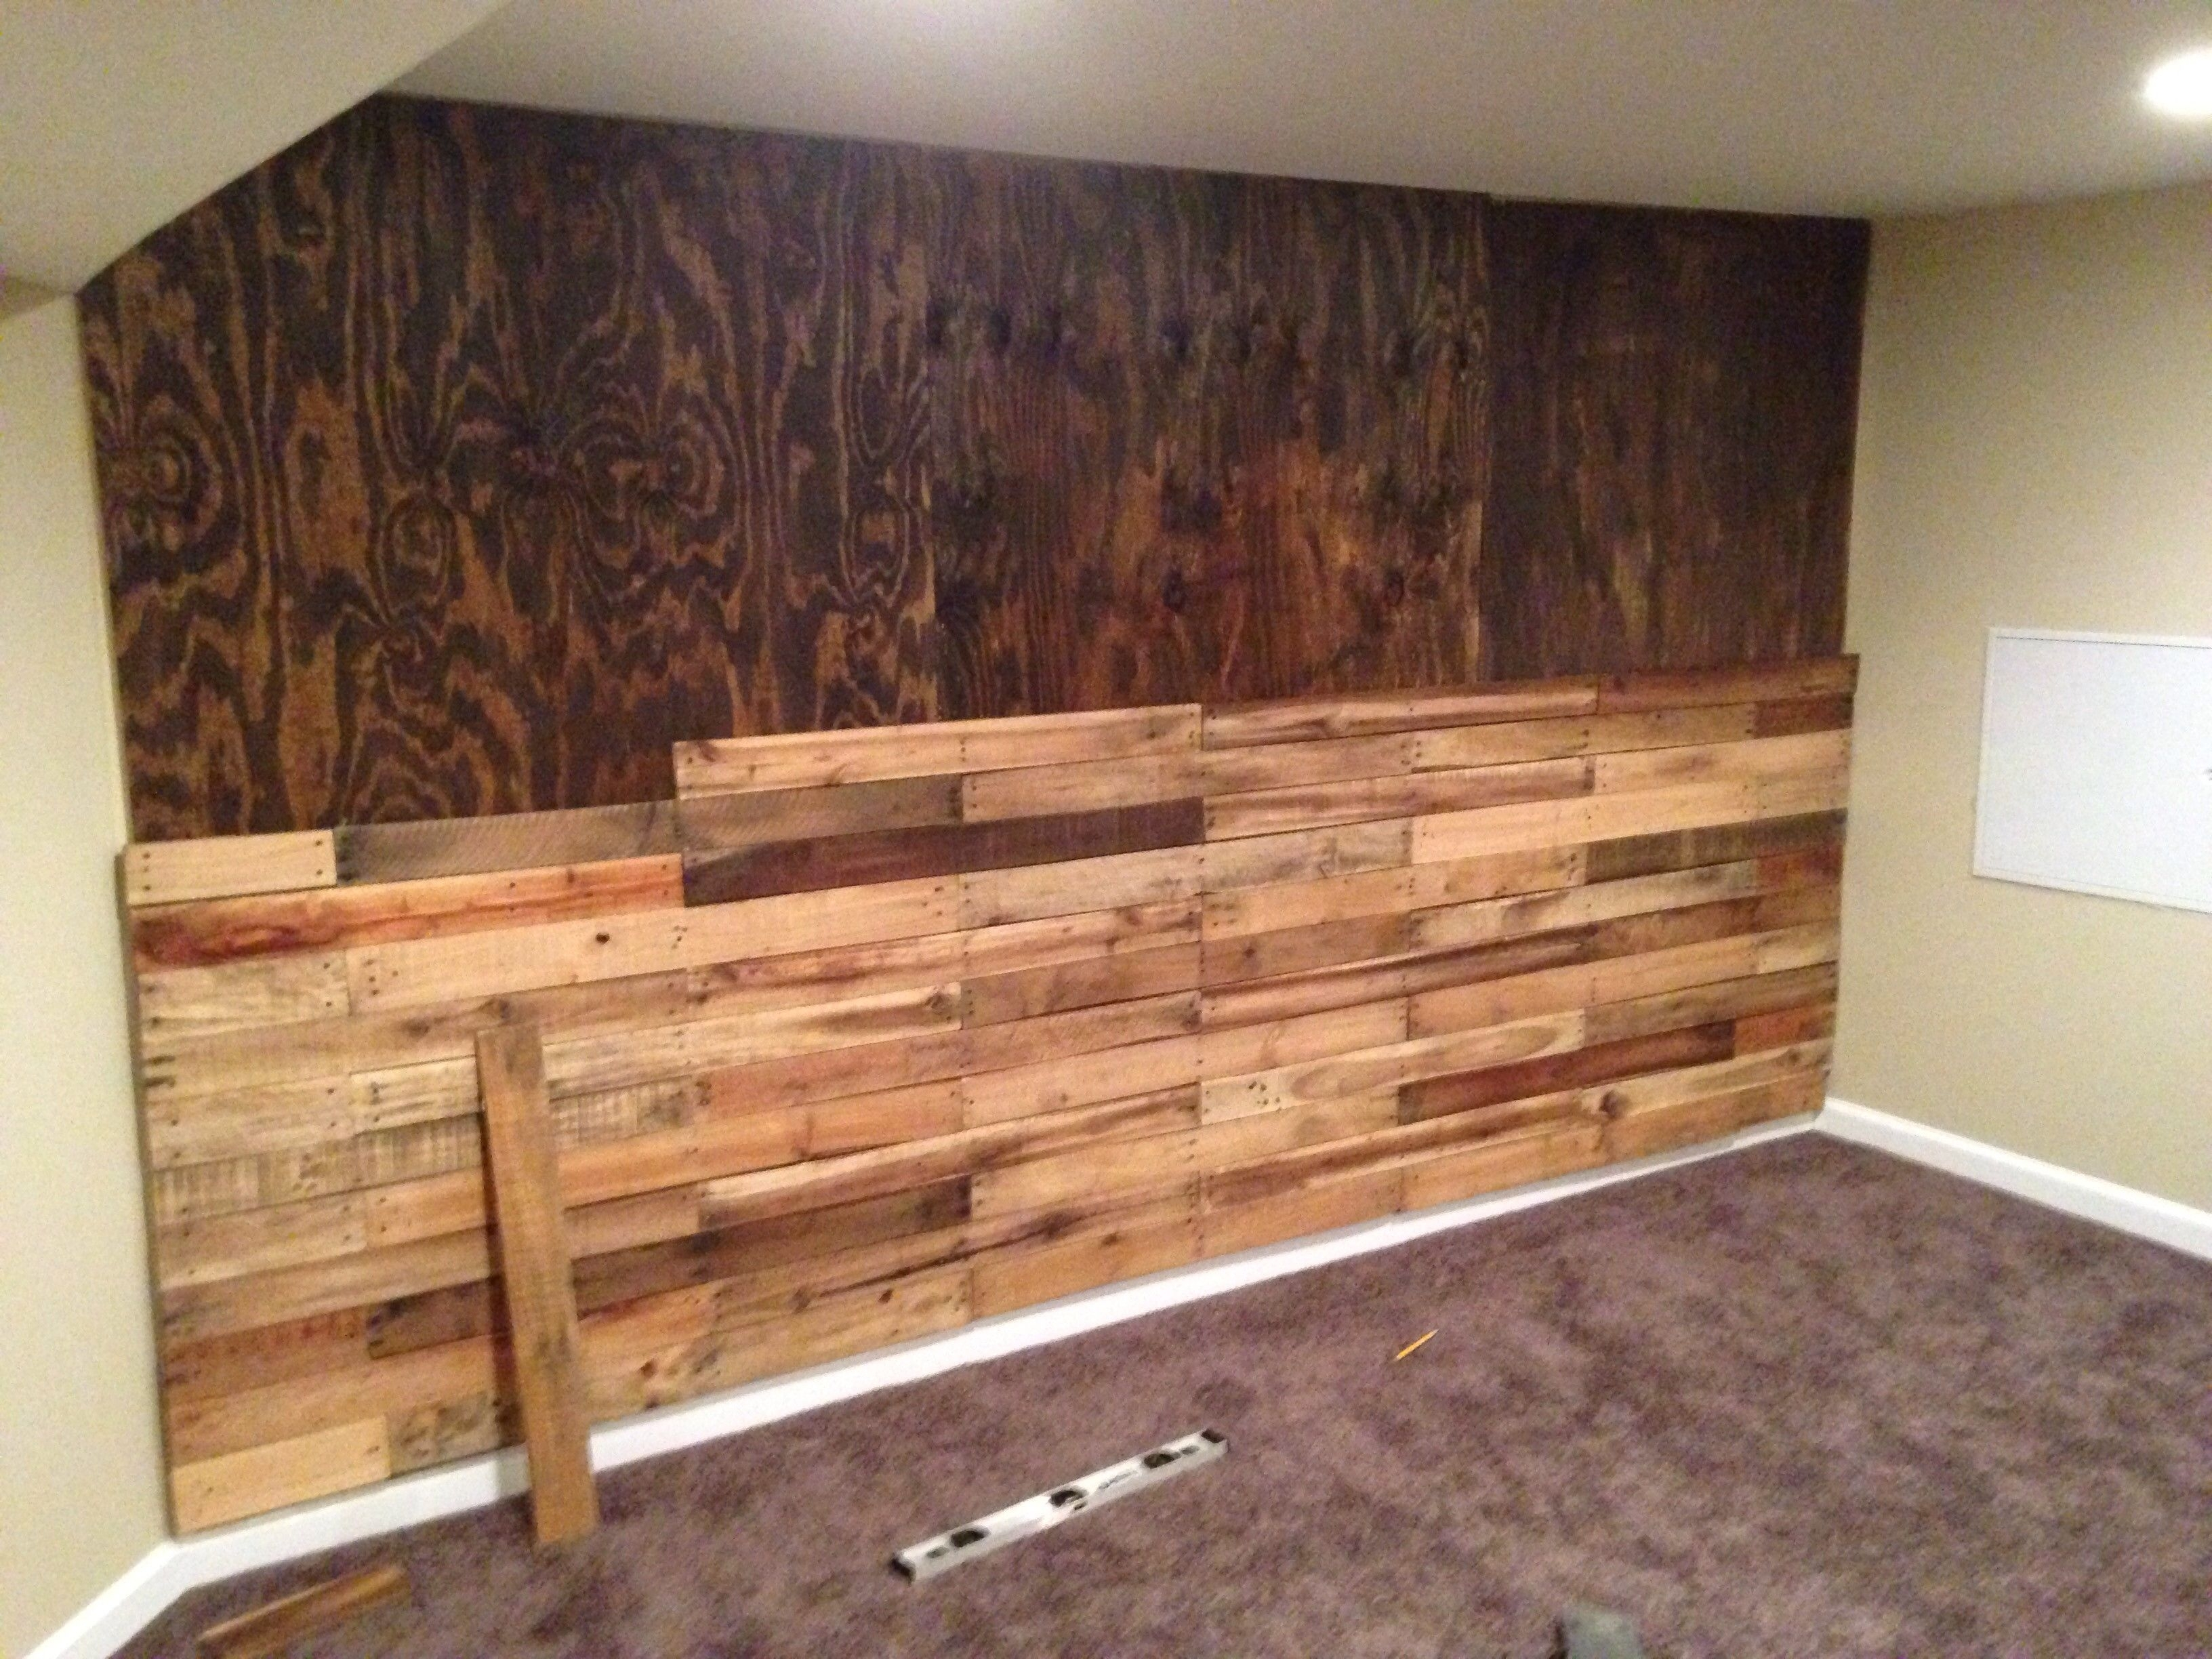 Pallet Accent Wall! | Pallet Accent Wall, Pallets And Walls Throughout Most Recent Wood Pallets Wall Accents (View 8 of 15)